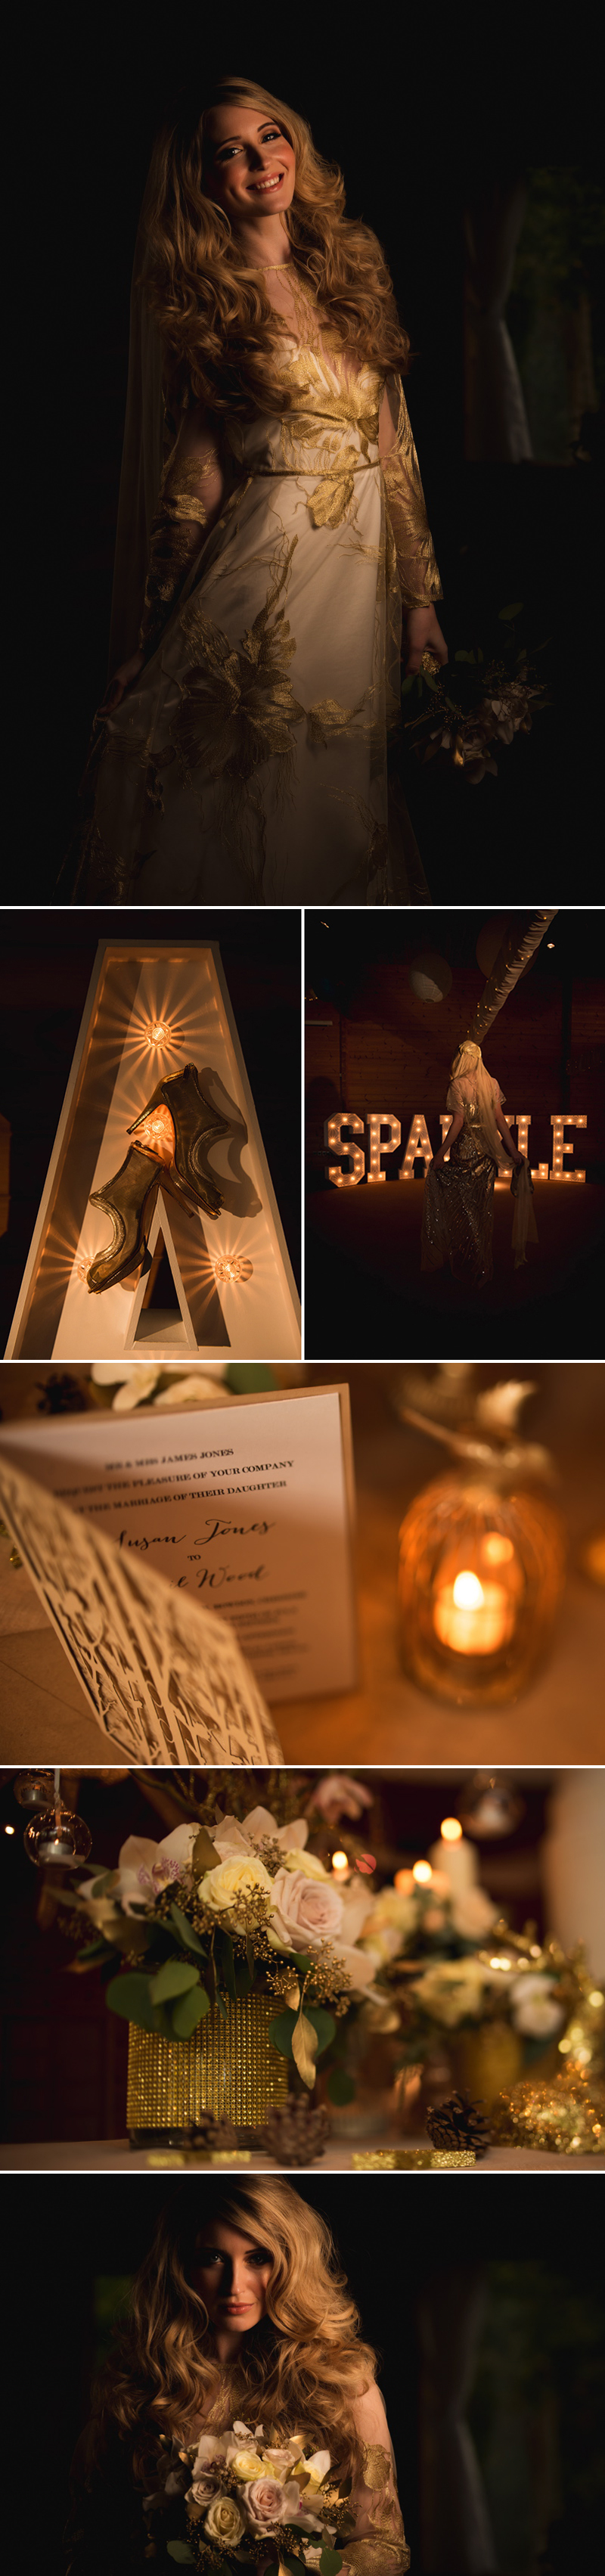 gold-sparkle-winter-wedding-inspiration-jan-clarke-neil-redfern-photography-styal-lodge-coco-wedding-venues-003